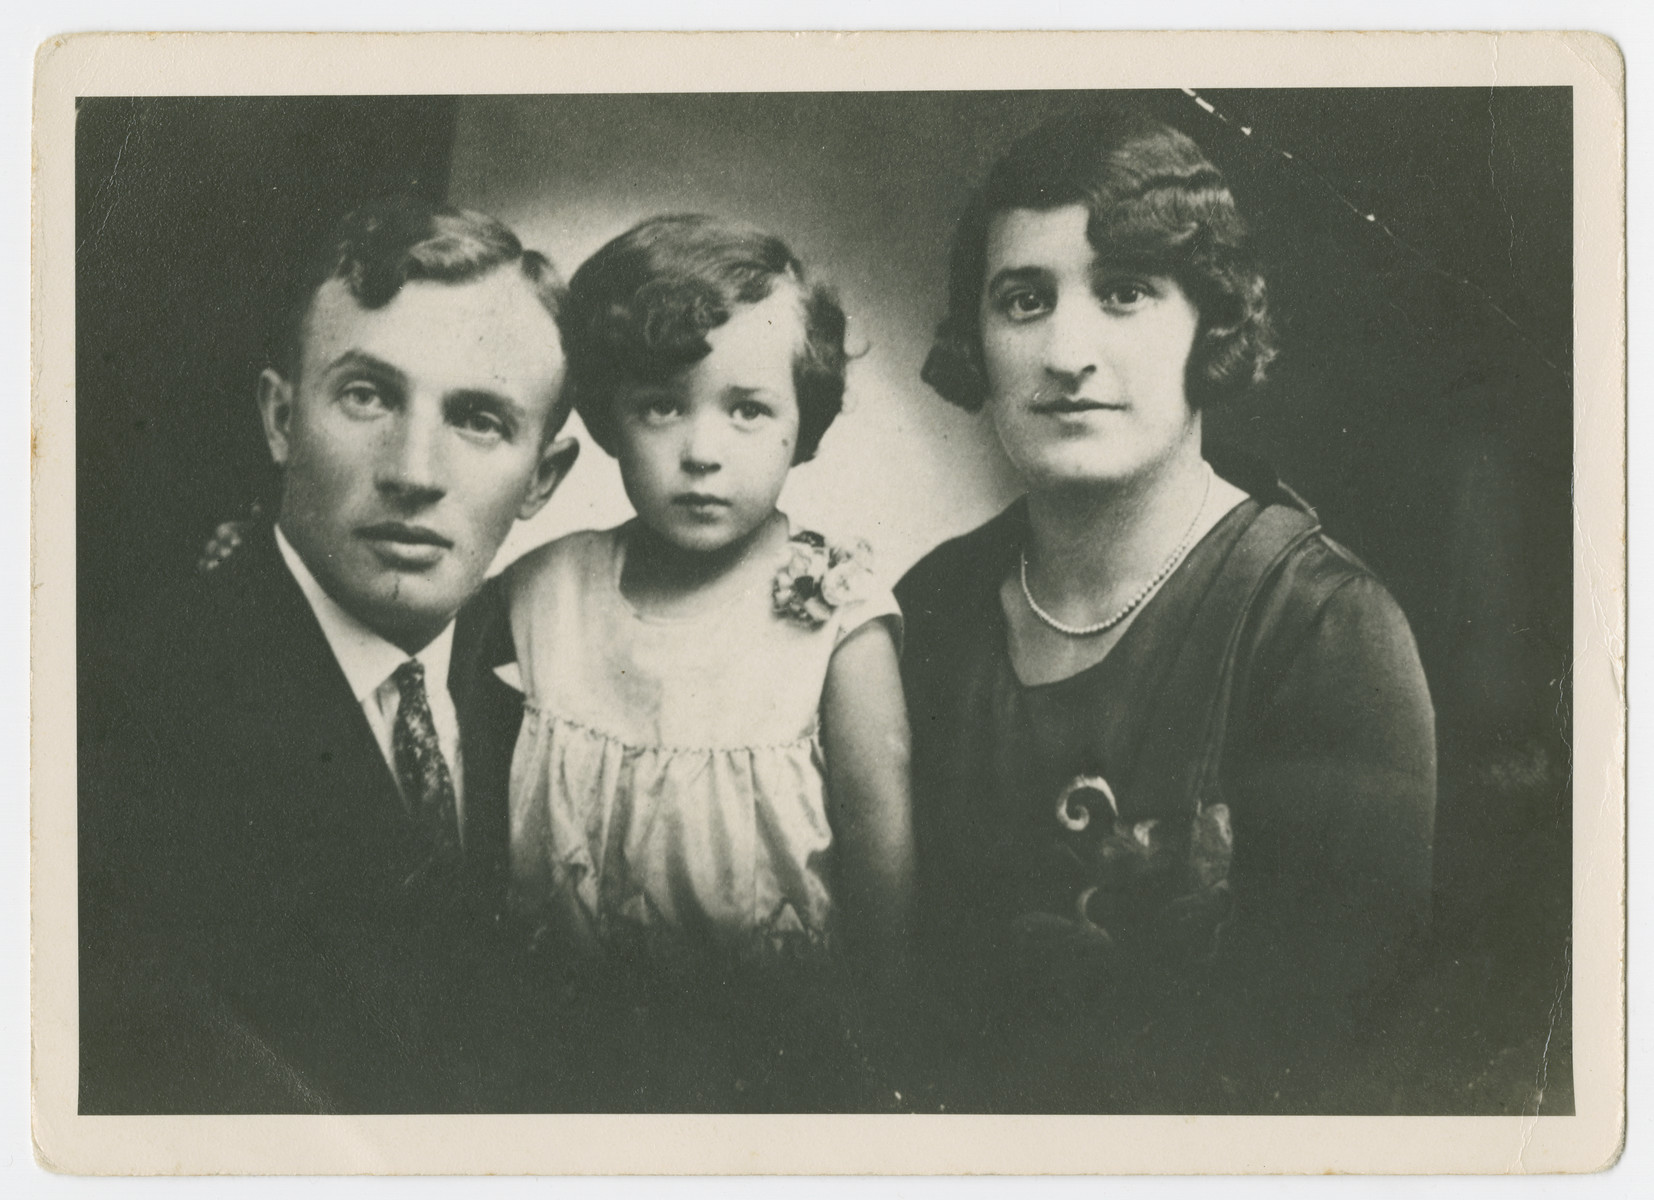 Portrait of Majer Mundlak with his first wife and child.